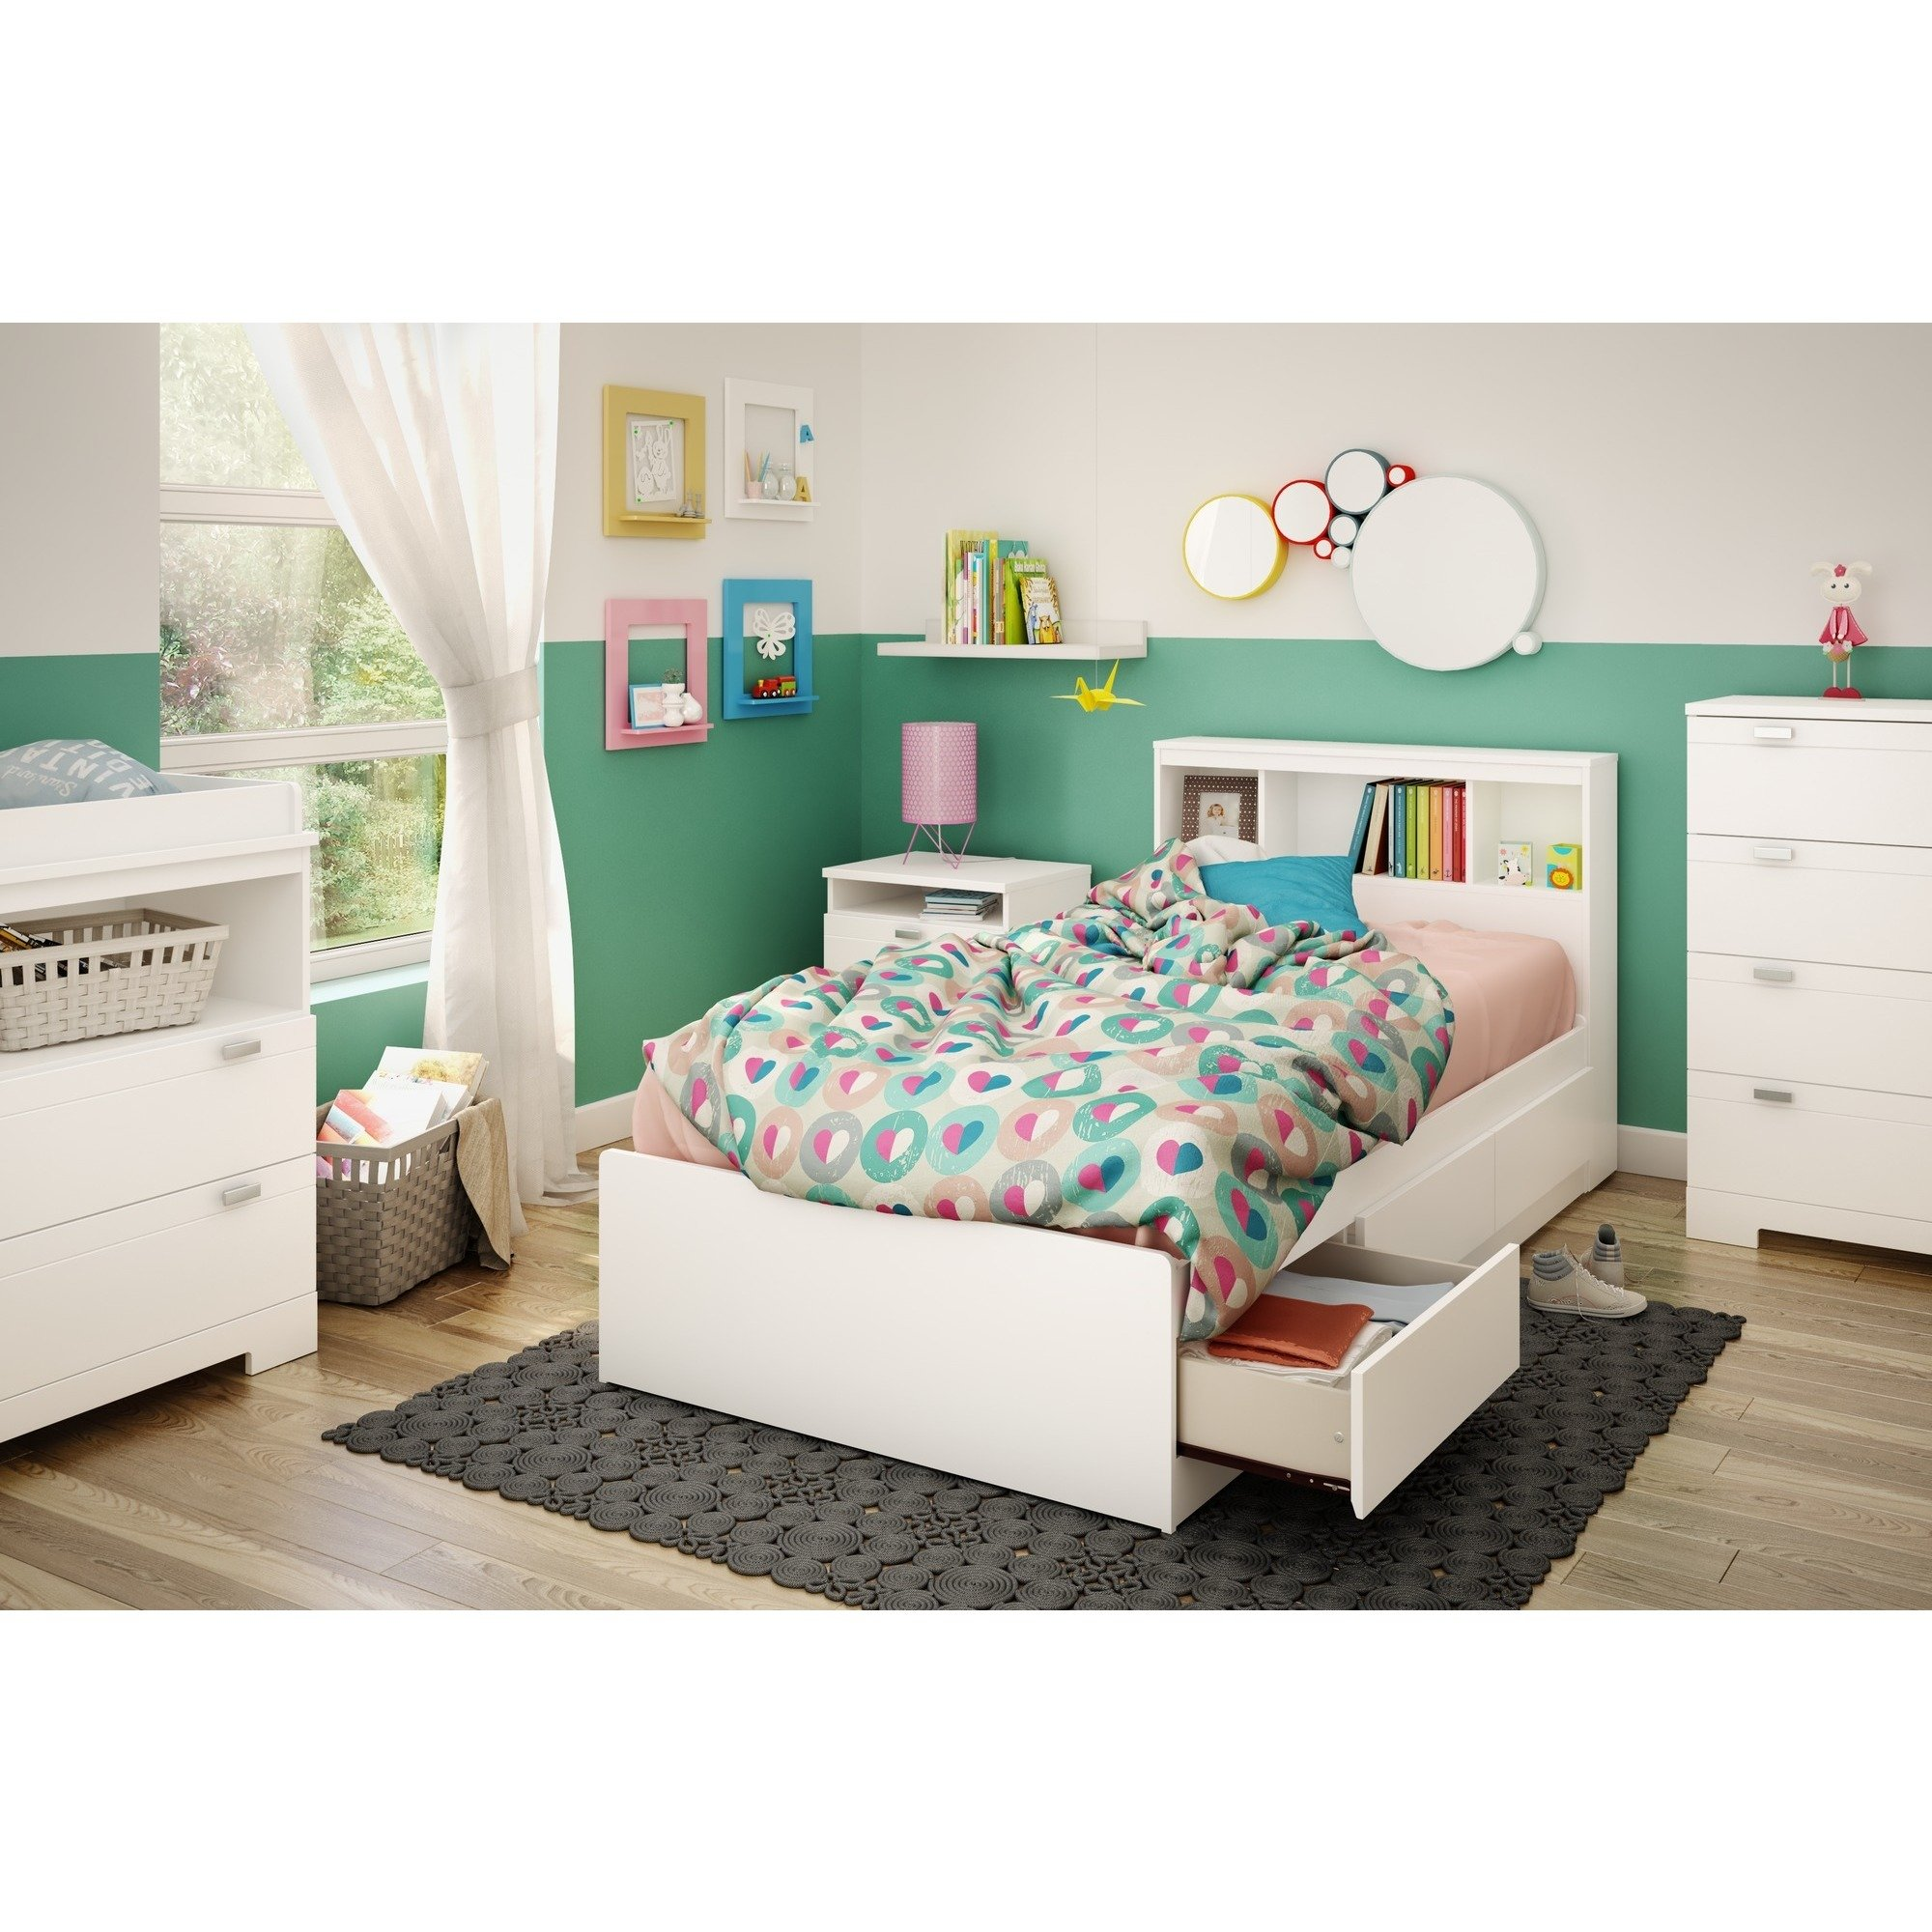 Handys Reevo Mates Pure White 39 Inch Twin Bed With Bookcase Headboard